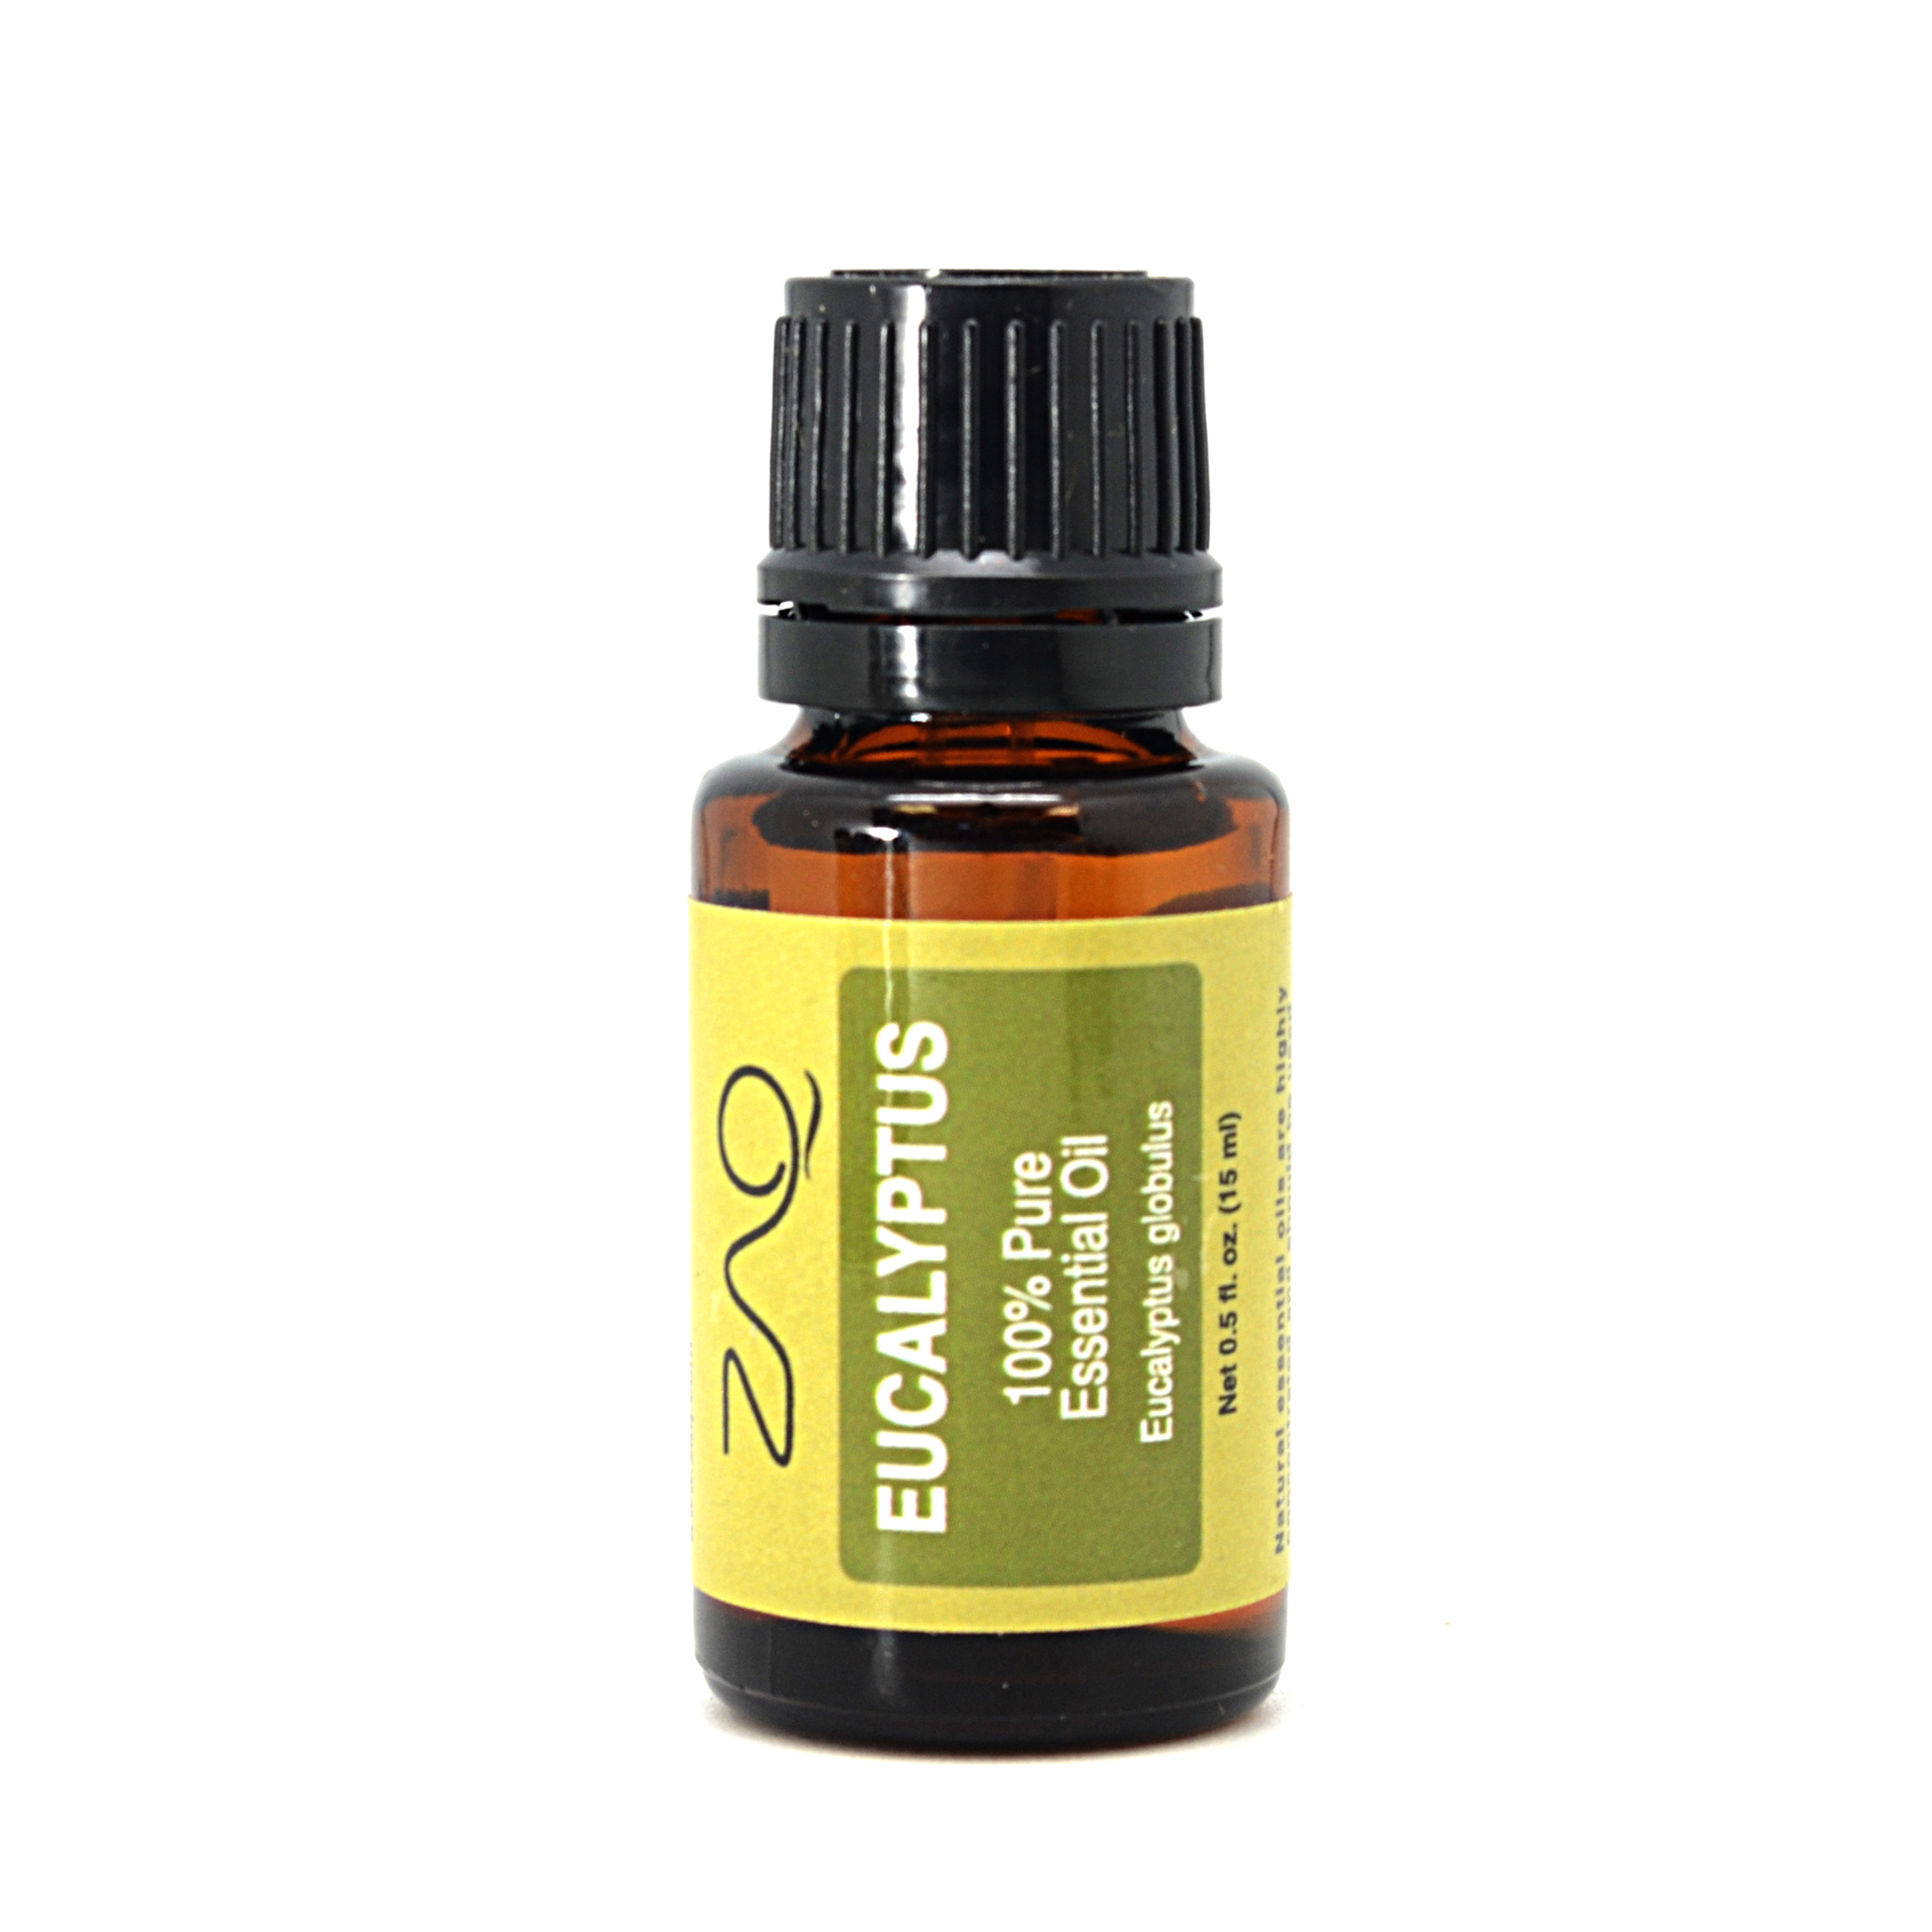 ZAQ Eucalyptus 100% Pure Therapeutic Grade Essential Oil - 15ml